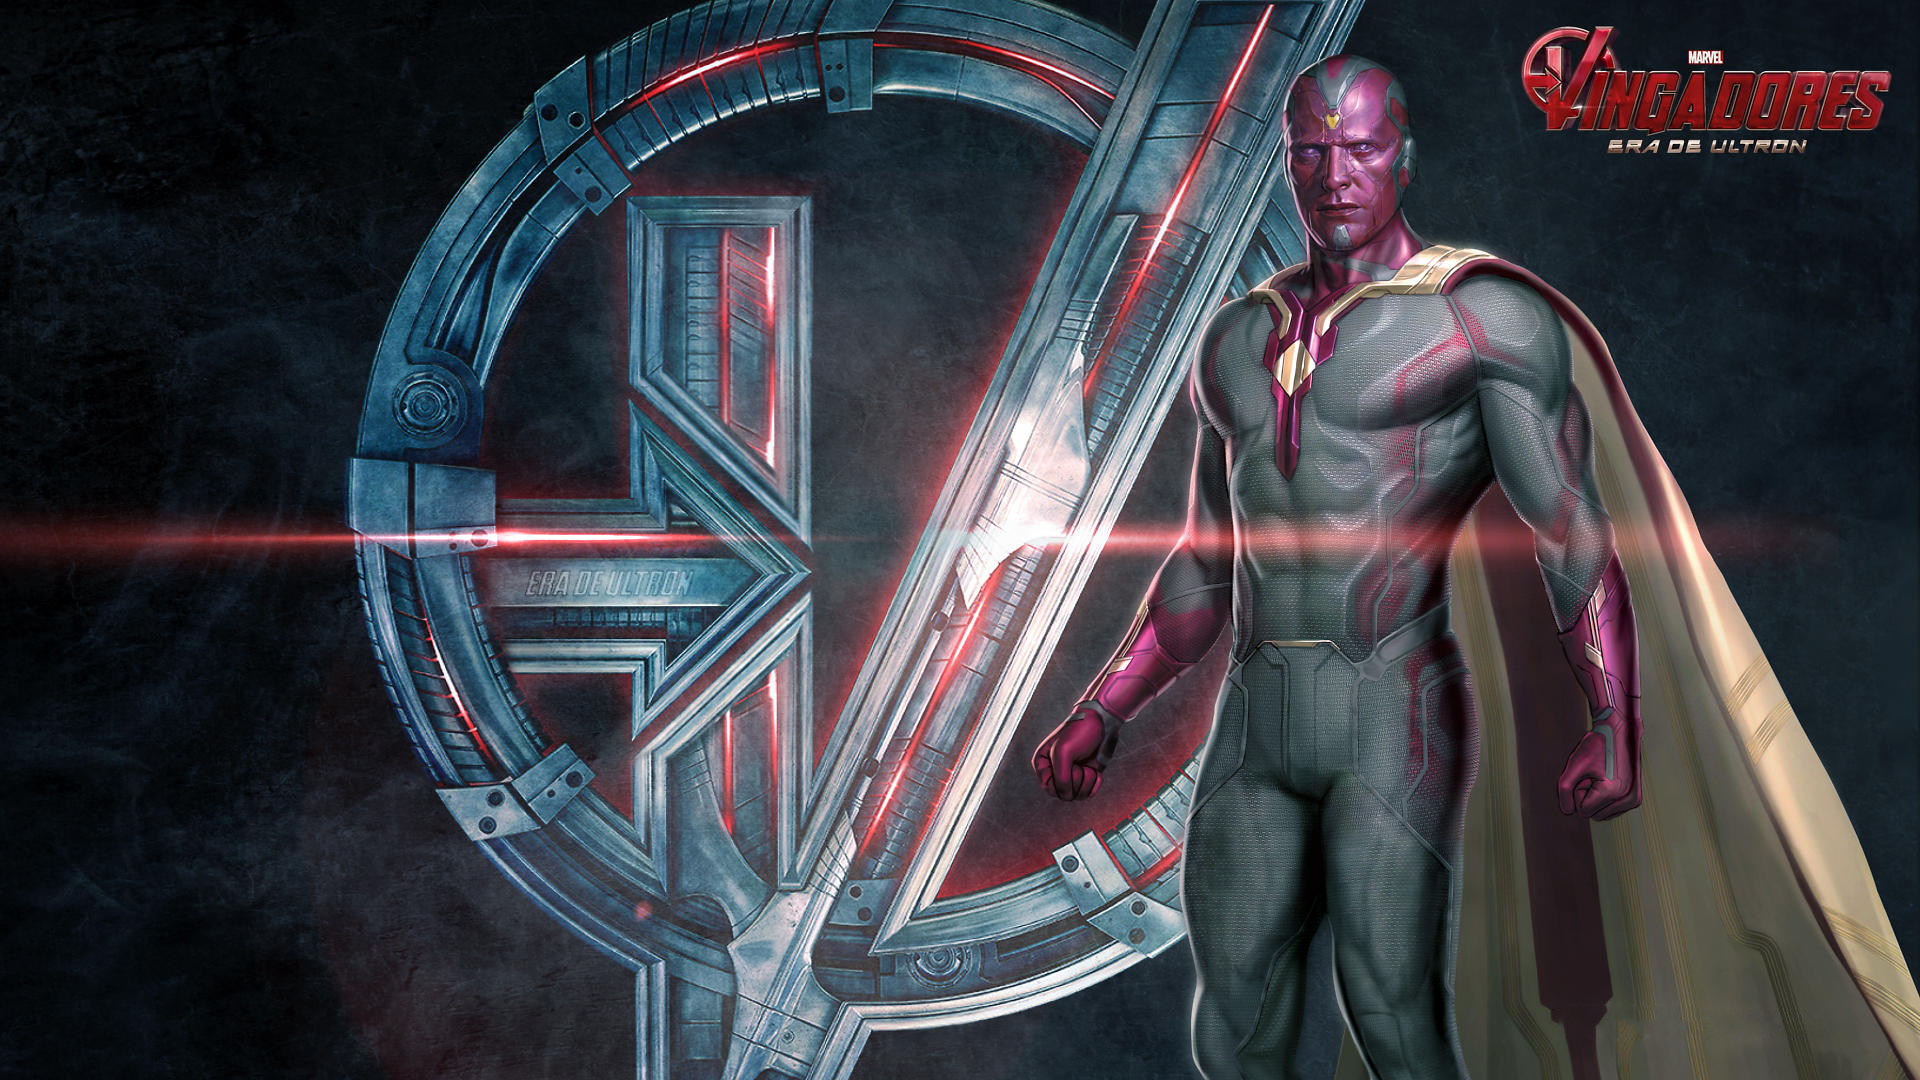 vision marvel avengers super hero latest hd wallpaper